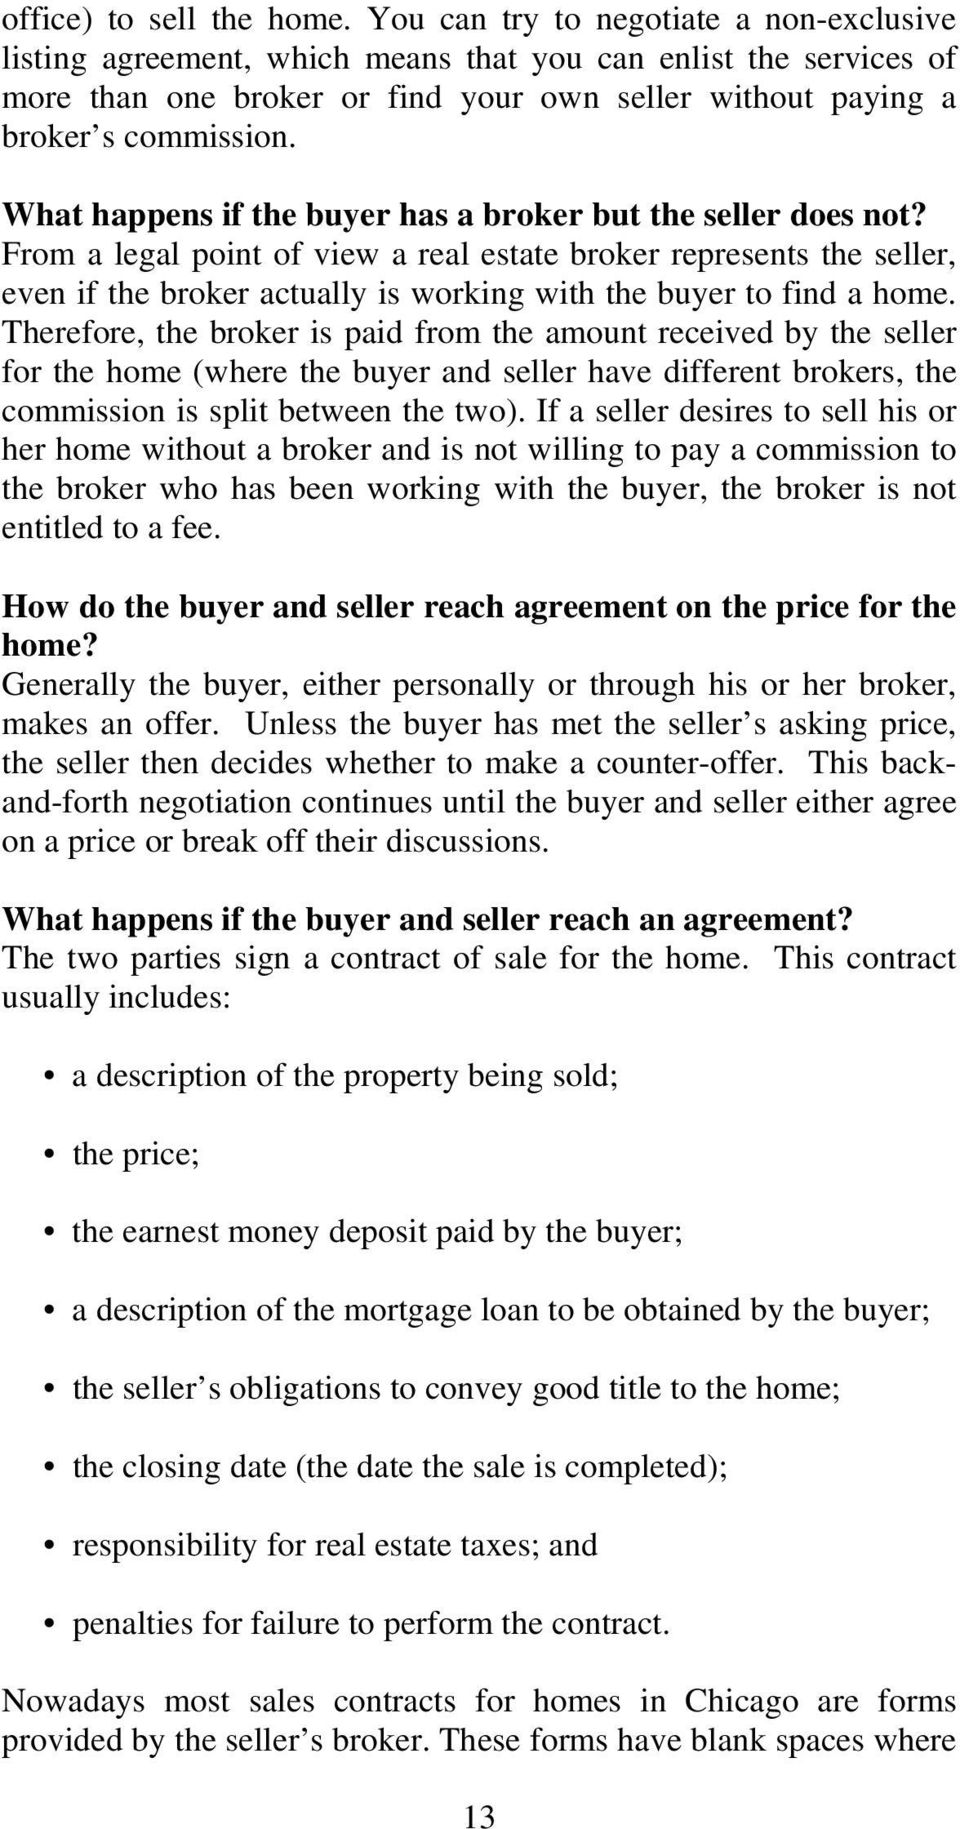 What happens if the buyer has a broker but the seller does not?